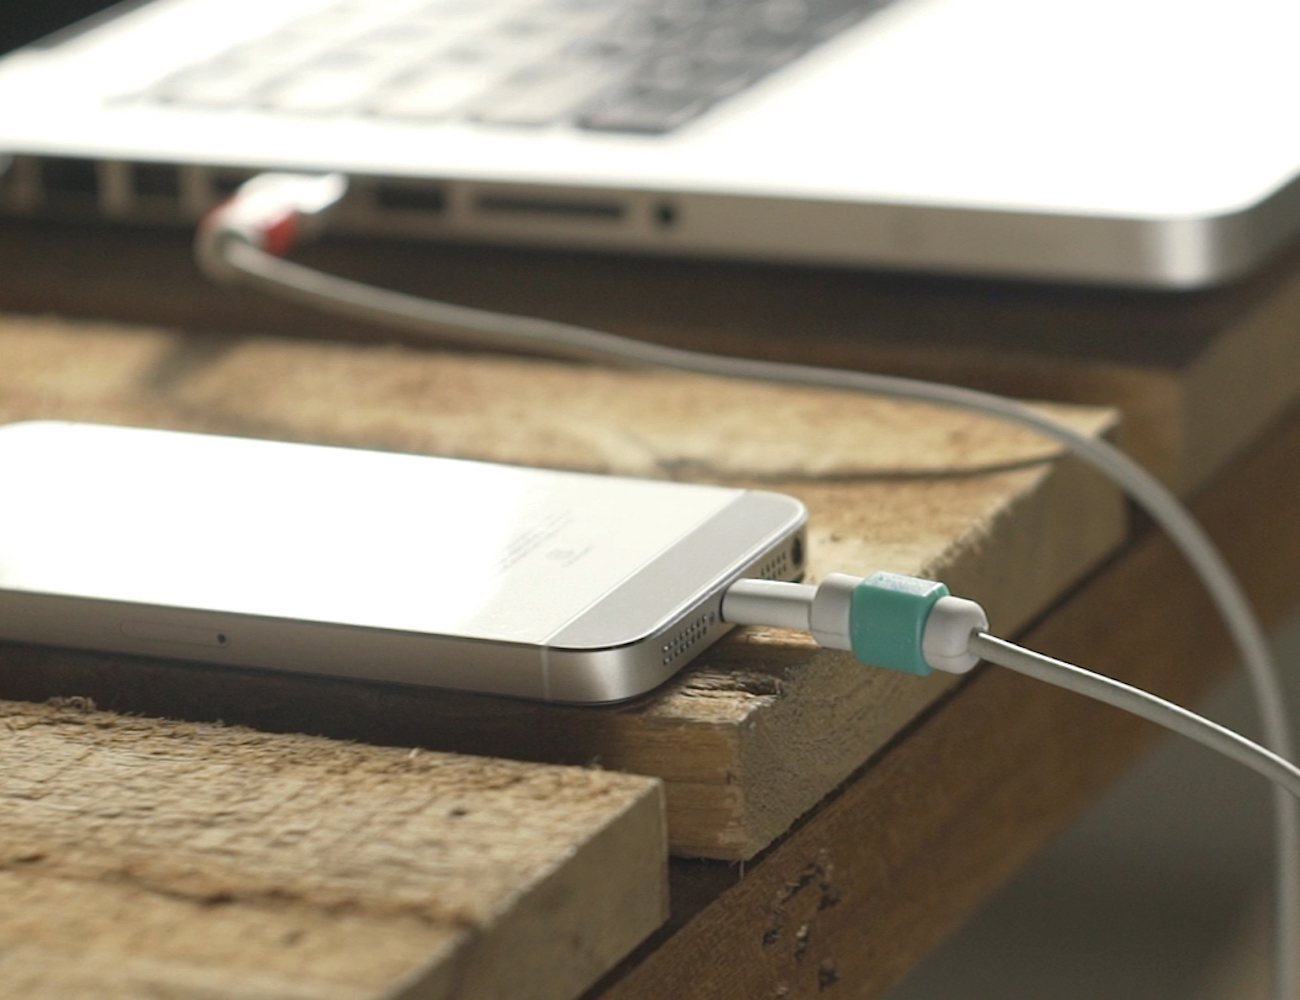 Lightning Saver and Magsafe Saver